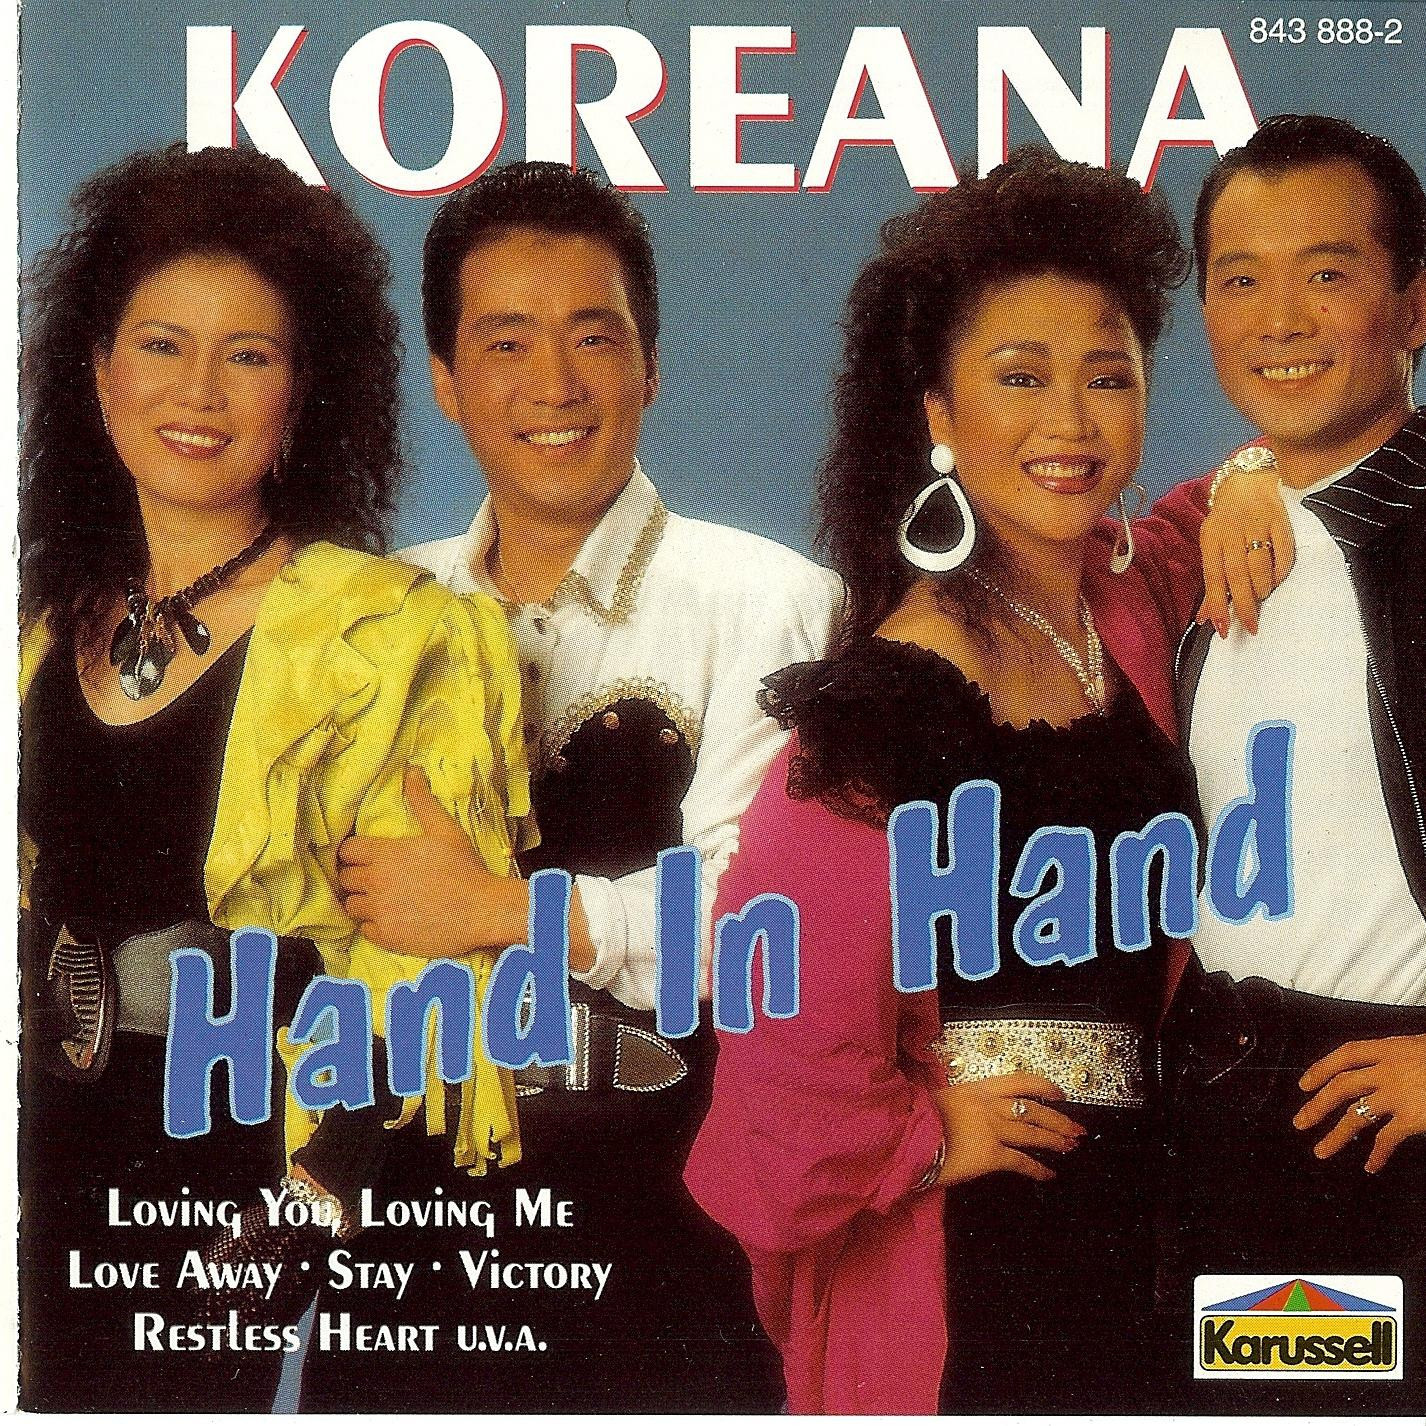 n 1988 the Koreans launched perhaps the most famous Olympic song of all:  'Hand in Hand' by Georgio Moroder and Tom Whitlock ©Karussell